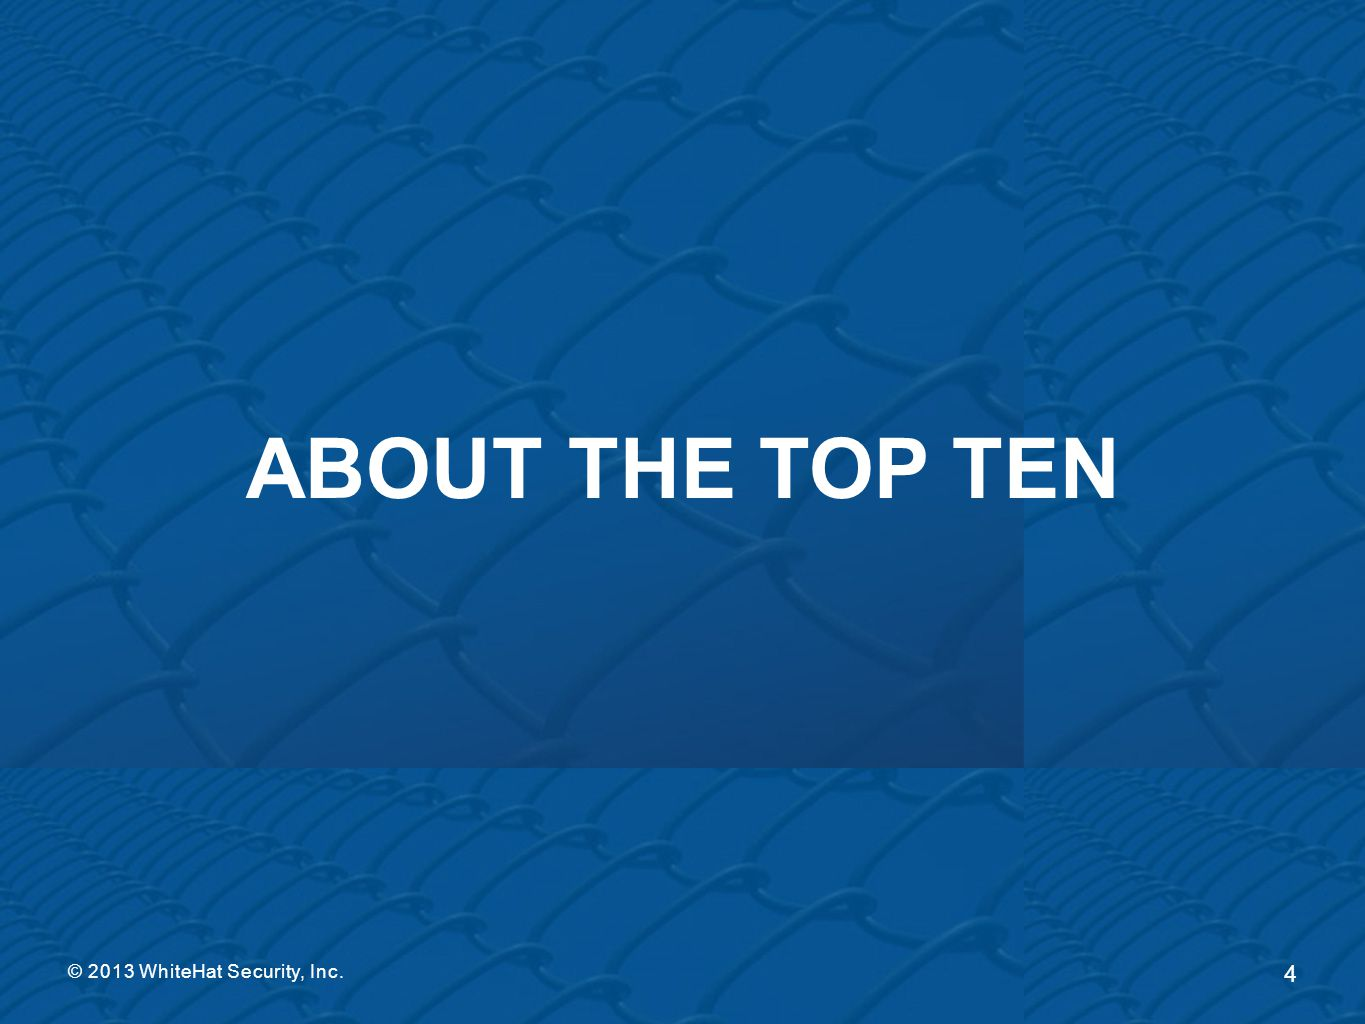 About the top ten © 2013 WhiteHat Security, Inc.